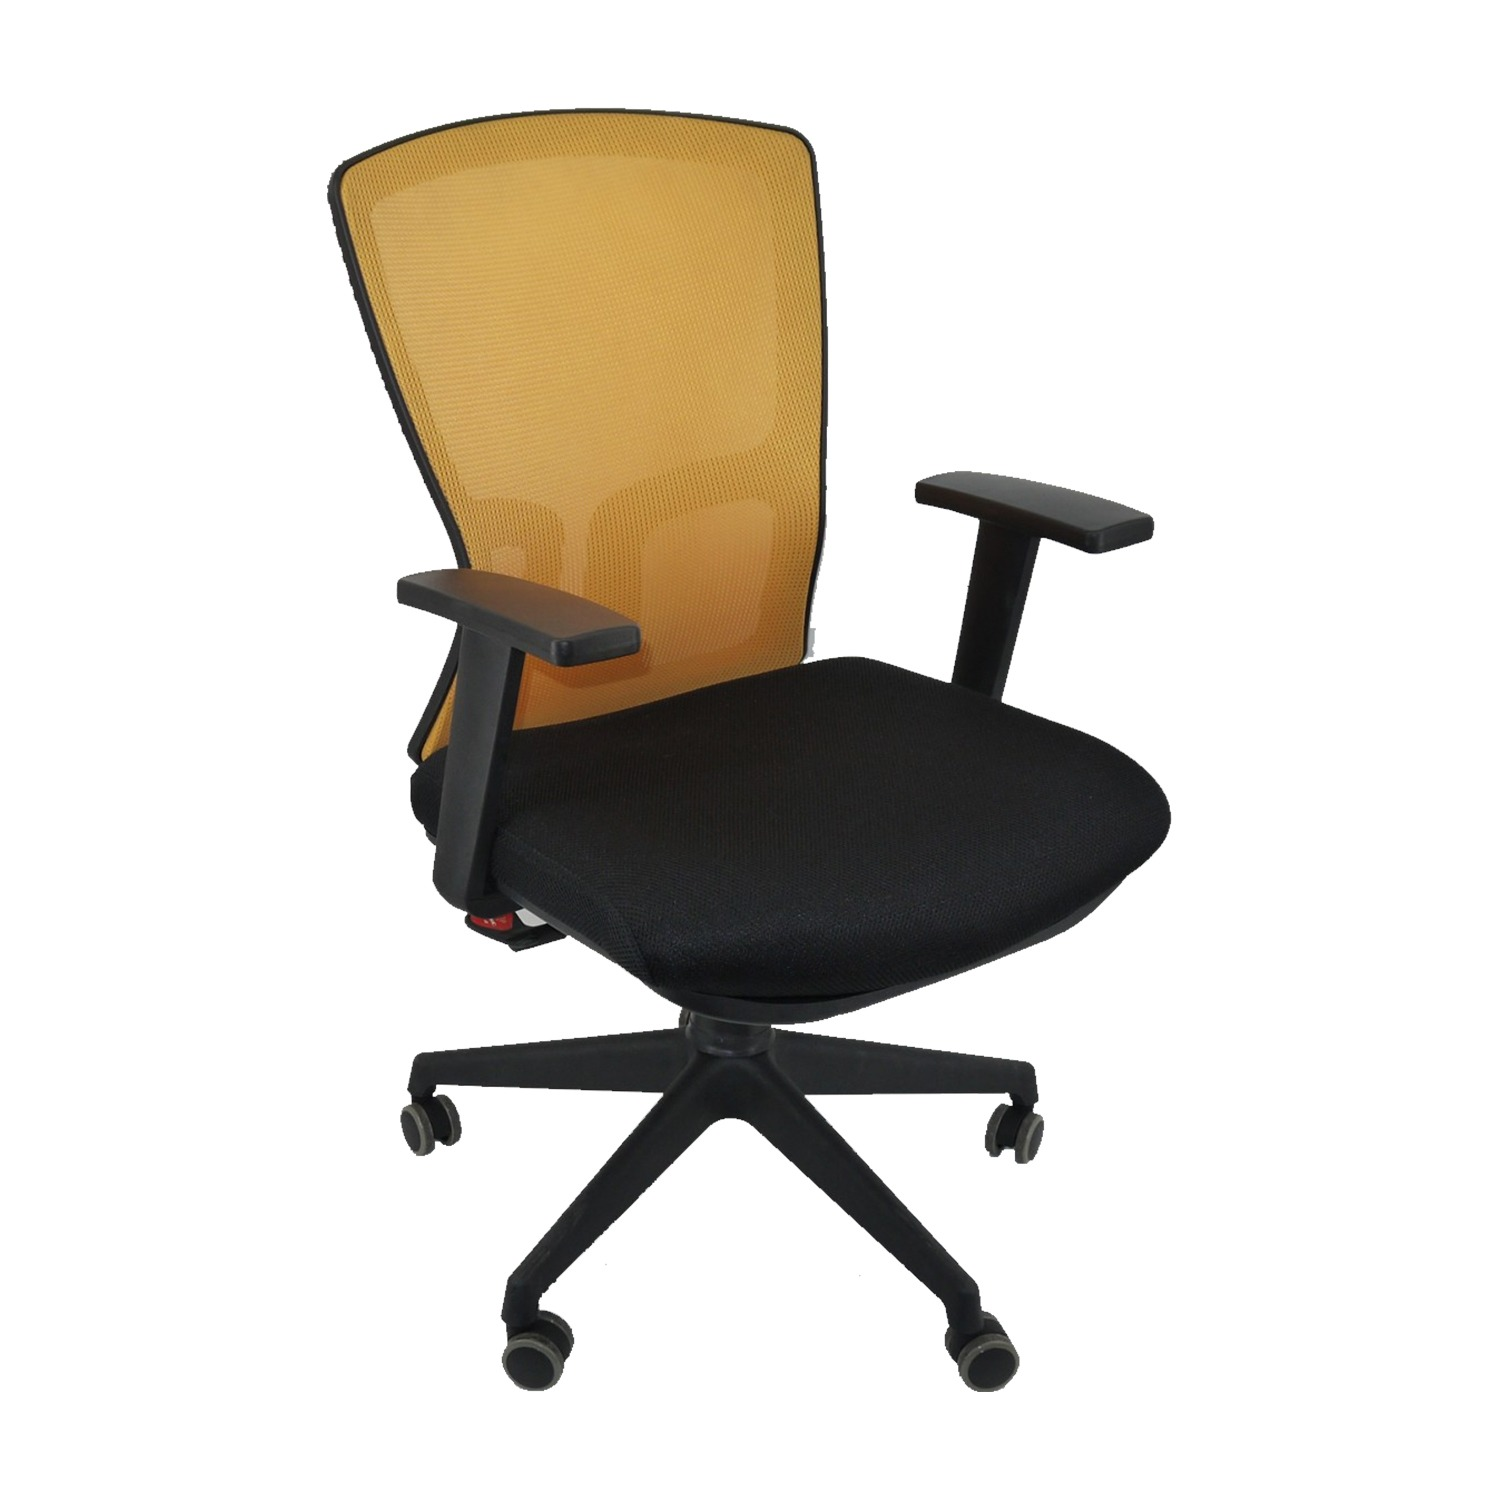 harmony office chair www topsimages com rh topsimages com Harmony Flowers Painted Harmony